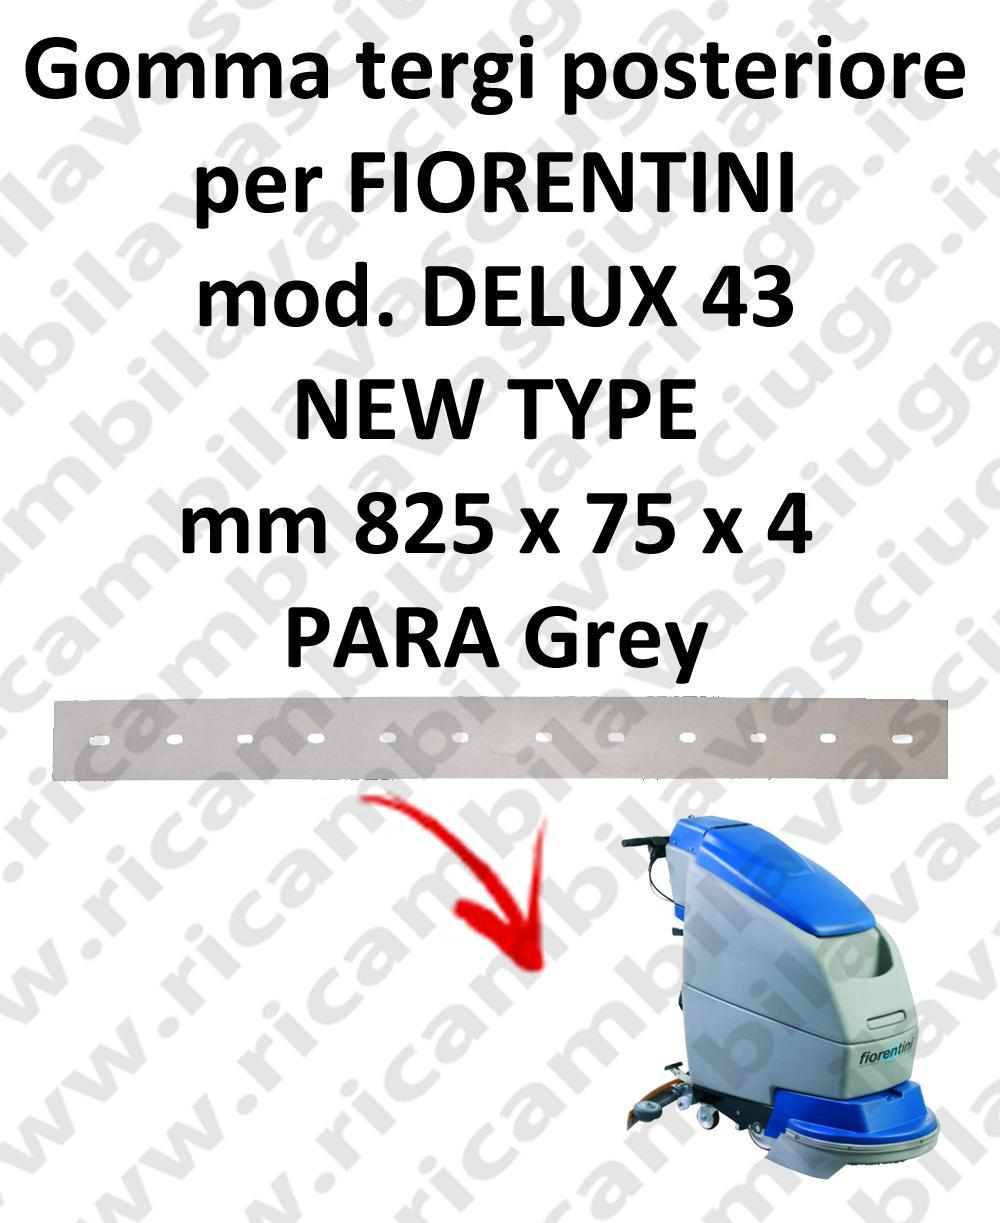 DELUX 43 new type Back Squeegee rubberfor FIORENTINI squeegee